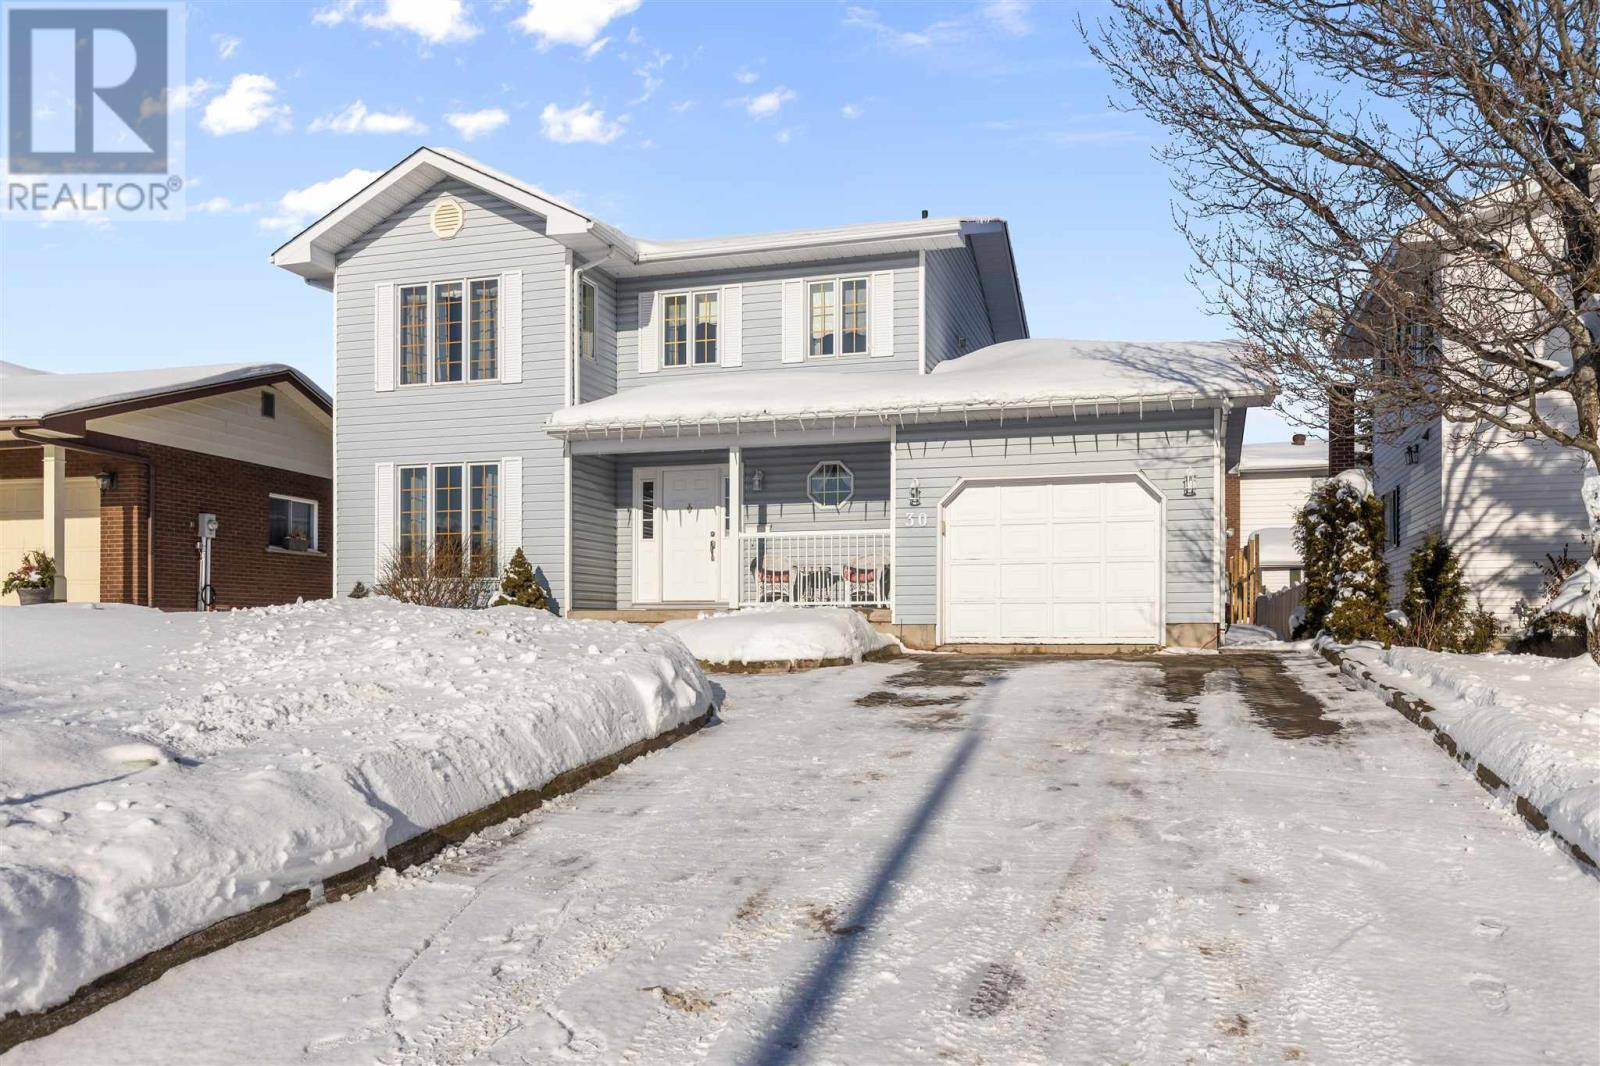 House for sale at 30 Fairmount Dr Sault Ste. Marie Ontario - MLS: SM127695